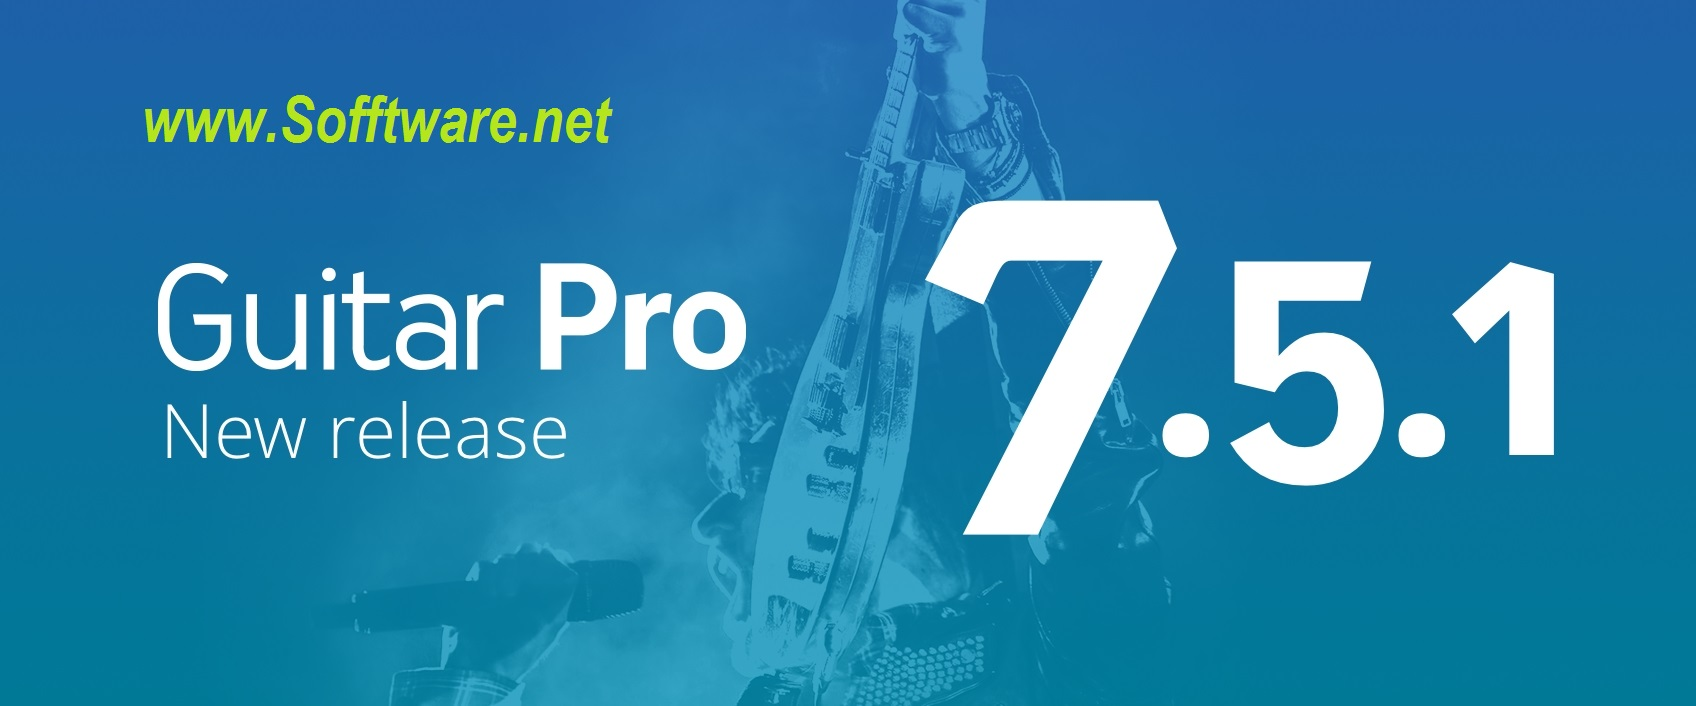 Guitar Pro 7.5.1 Crack With License Code Free Download